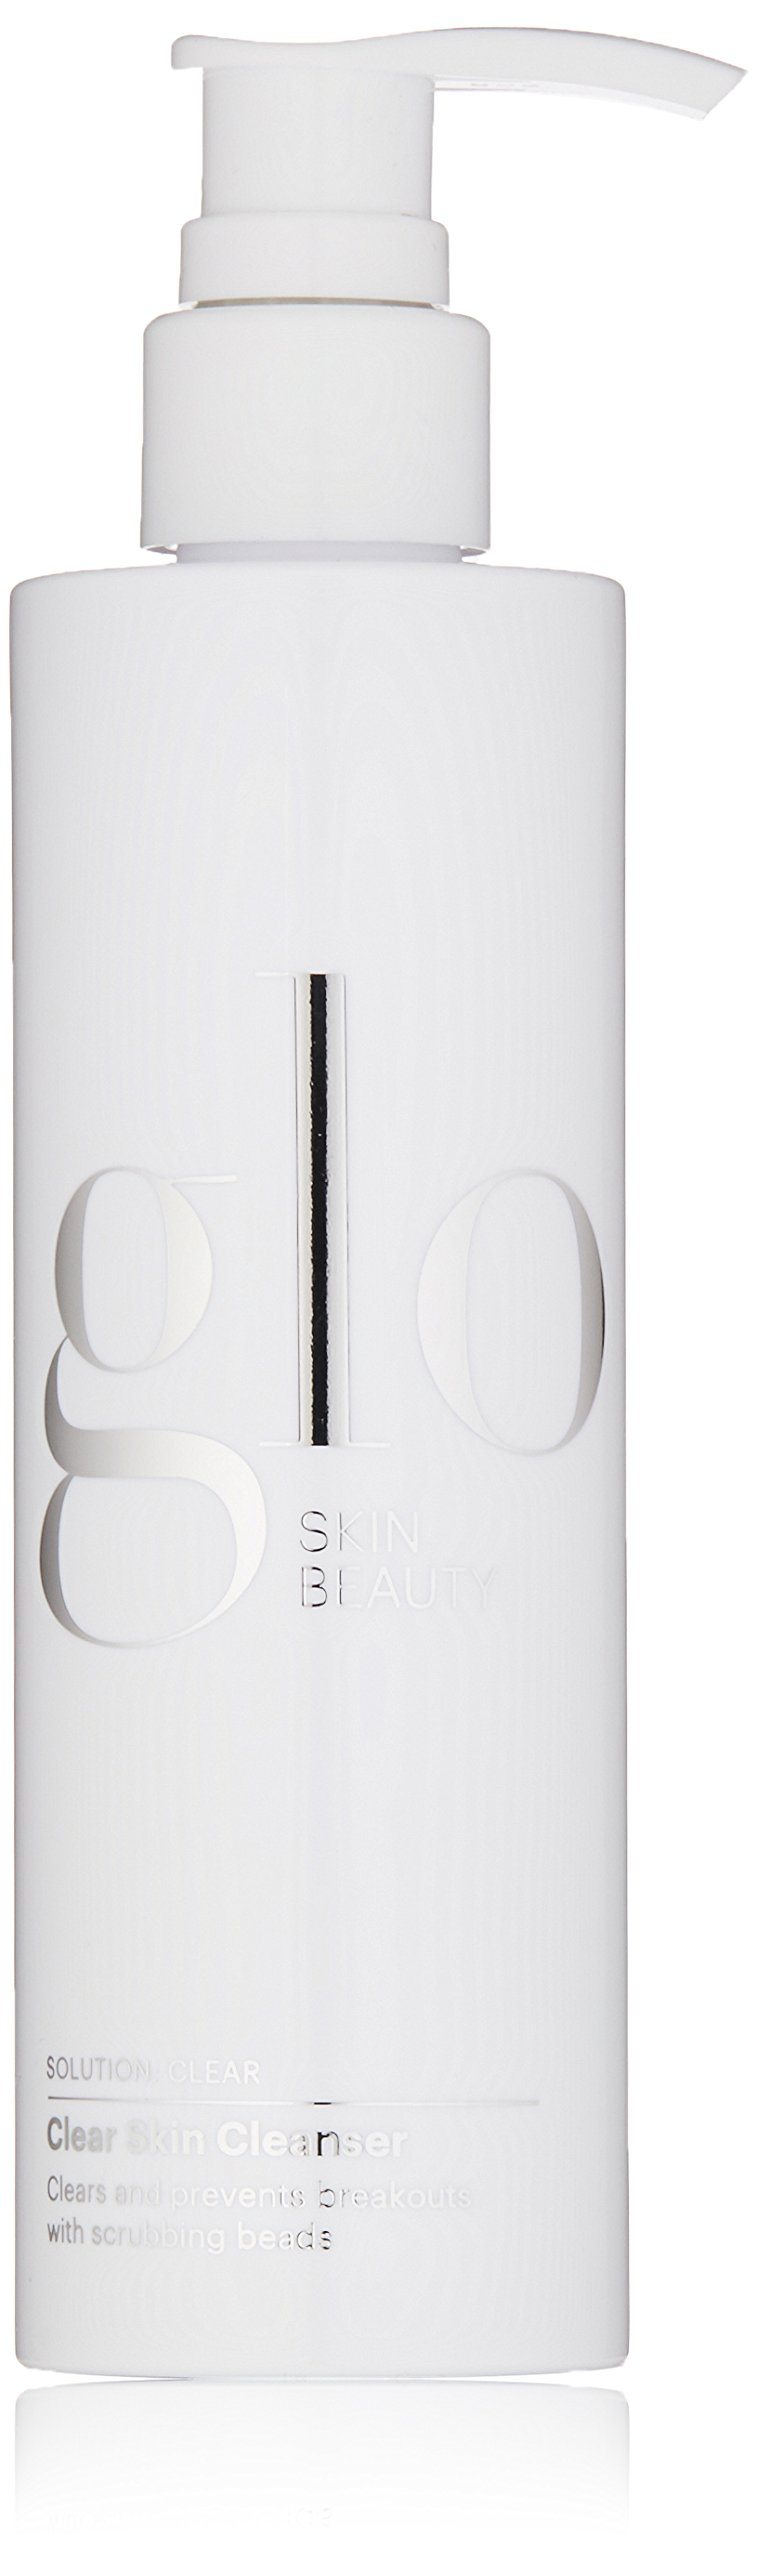 Glo Skin Beauty Clear Skin Cleanser   Salicylic Acid Face Wash to Treat Acne and Breakouts